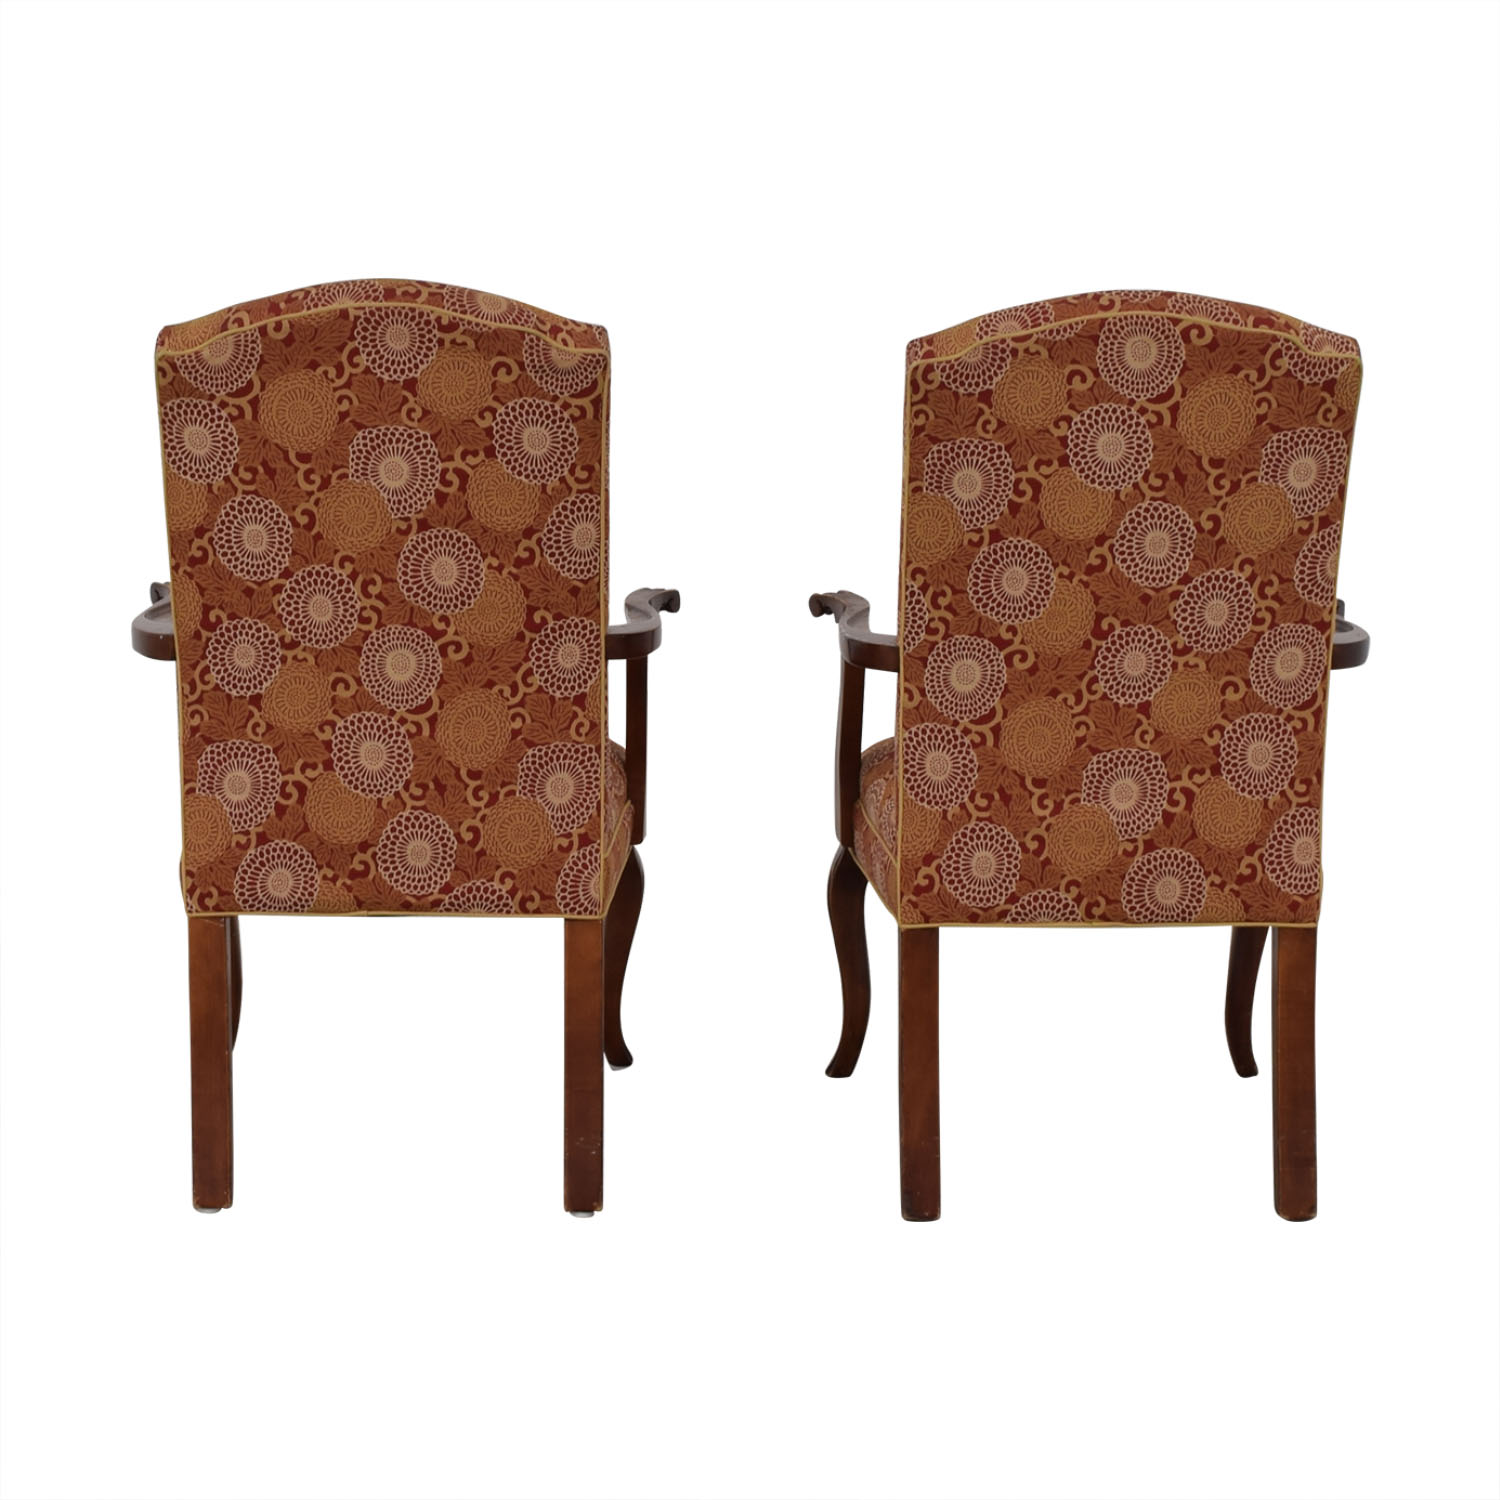 Ethan Allen Ethan Allen Patterned Armchairs discount